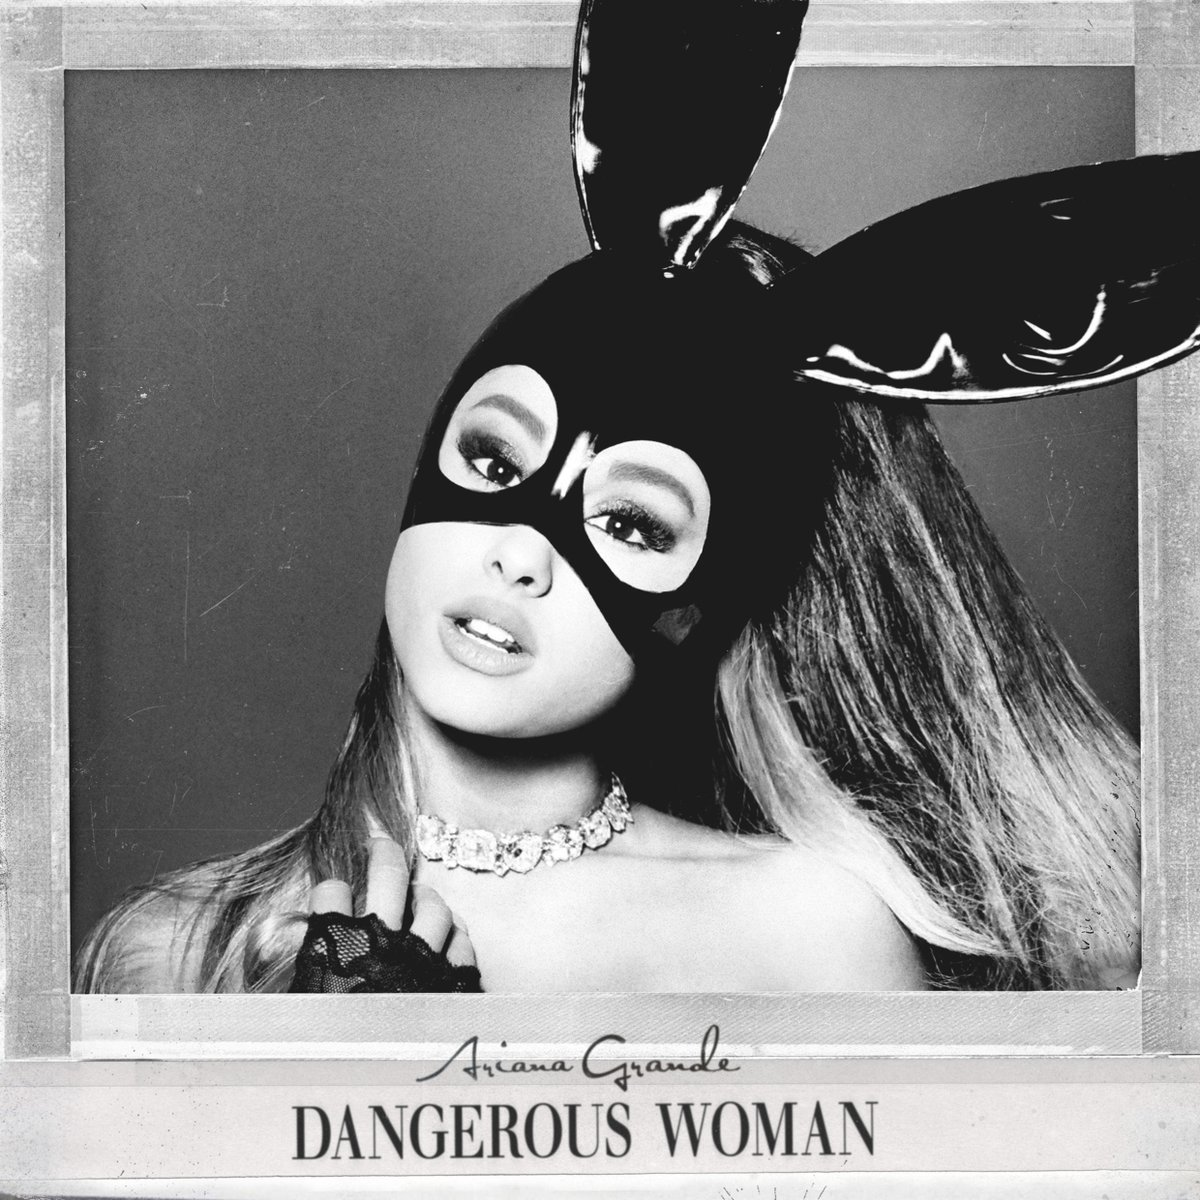 One year ago today, Ariana Grande released her third studio album &quot;Dangerous Woman&quot;. It hit #1 in 12 countries. #1YearOfDangerousWoman <br>http://pic.twitter.com/lKcUUHXAdC